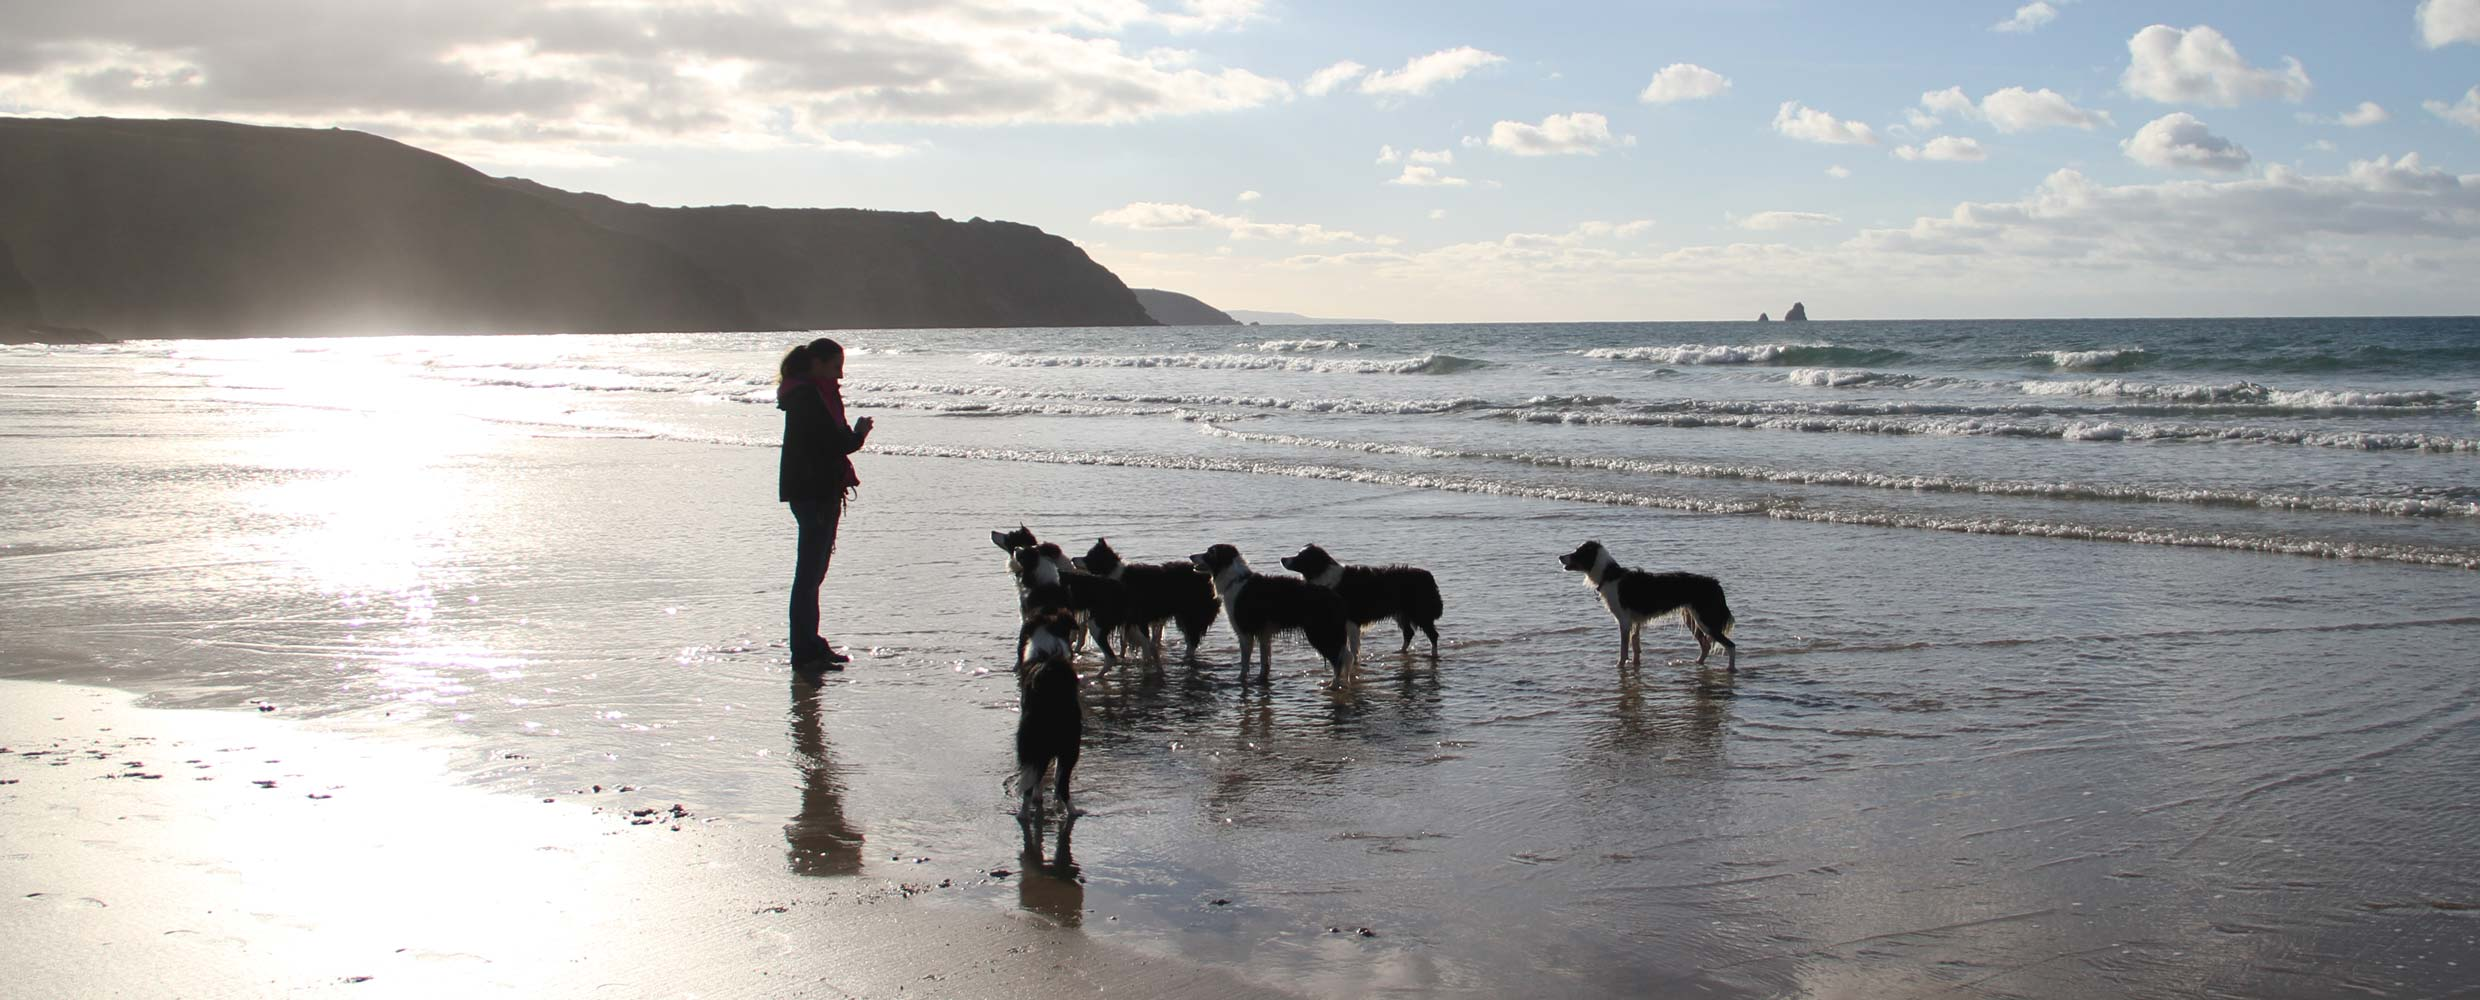 Alison Roets and her Border Collies on the beach in Perranporth, Cornwall